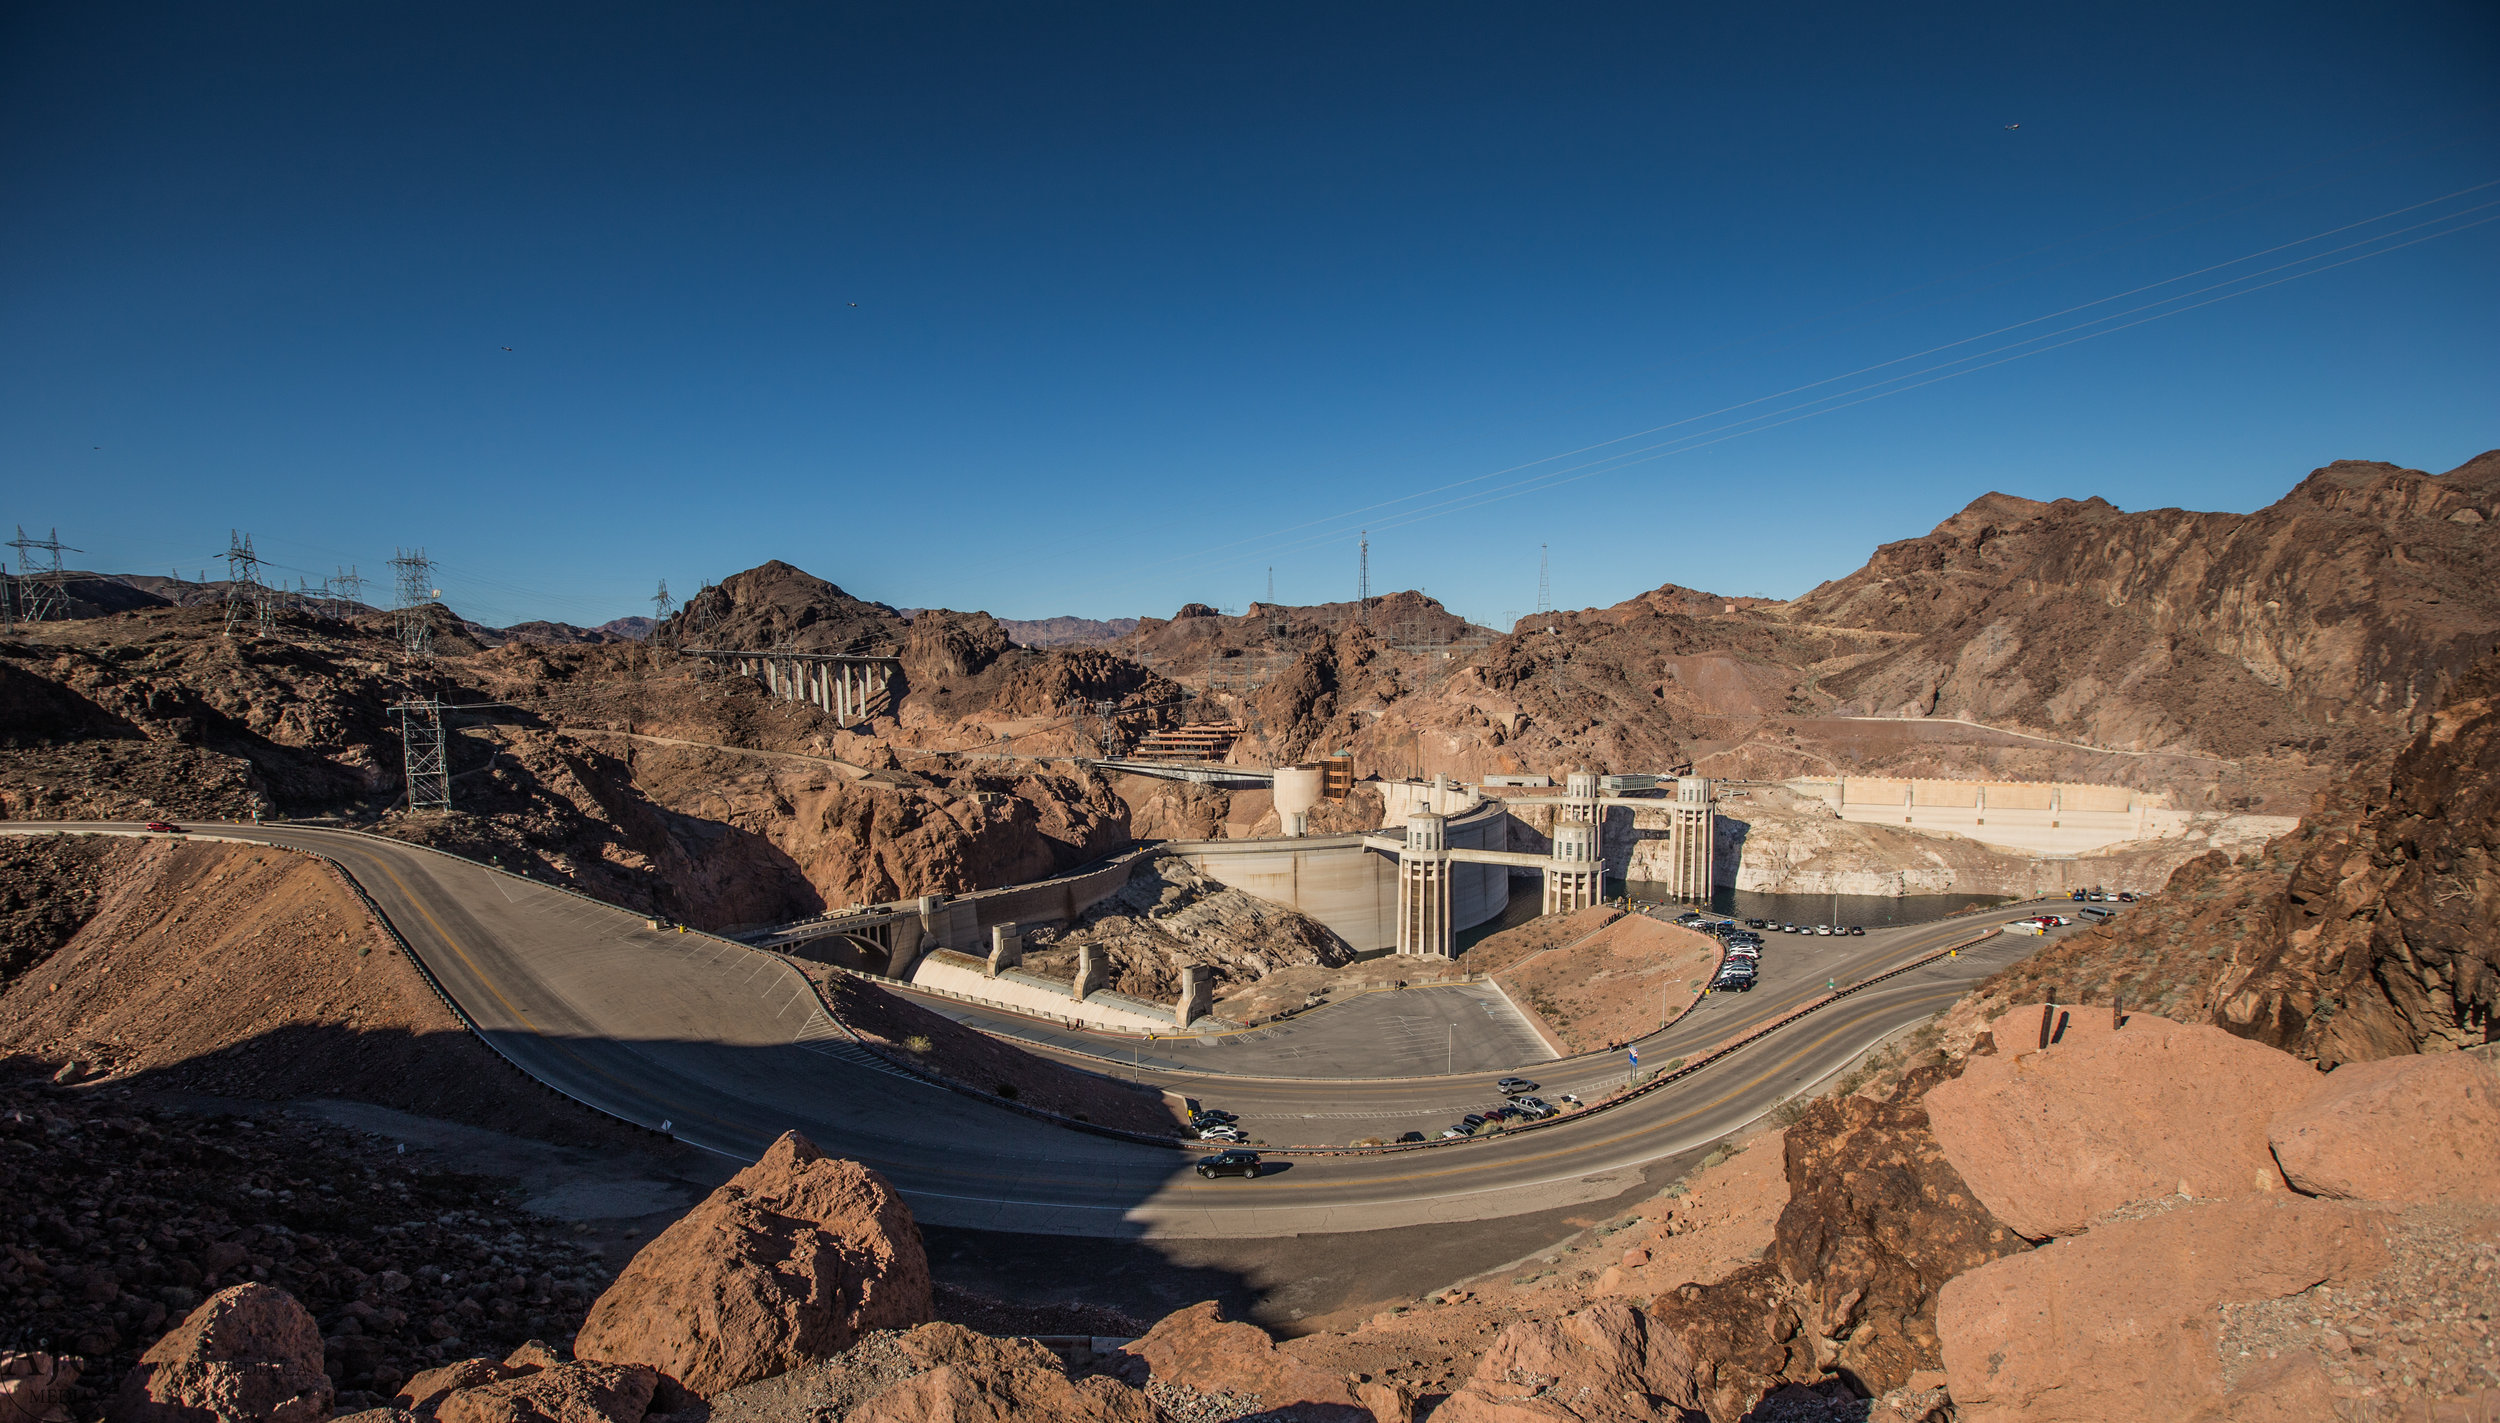 A shot you don't often see of the back side of the Hoover Dam